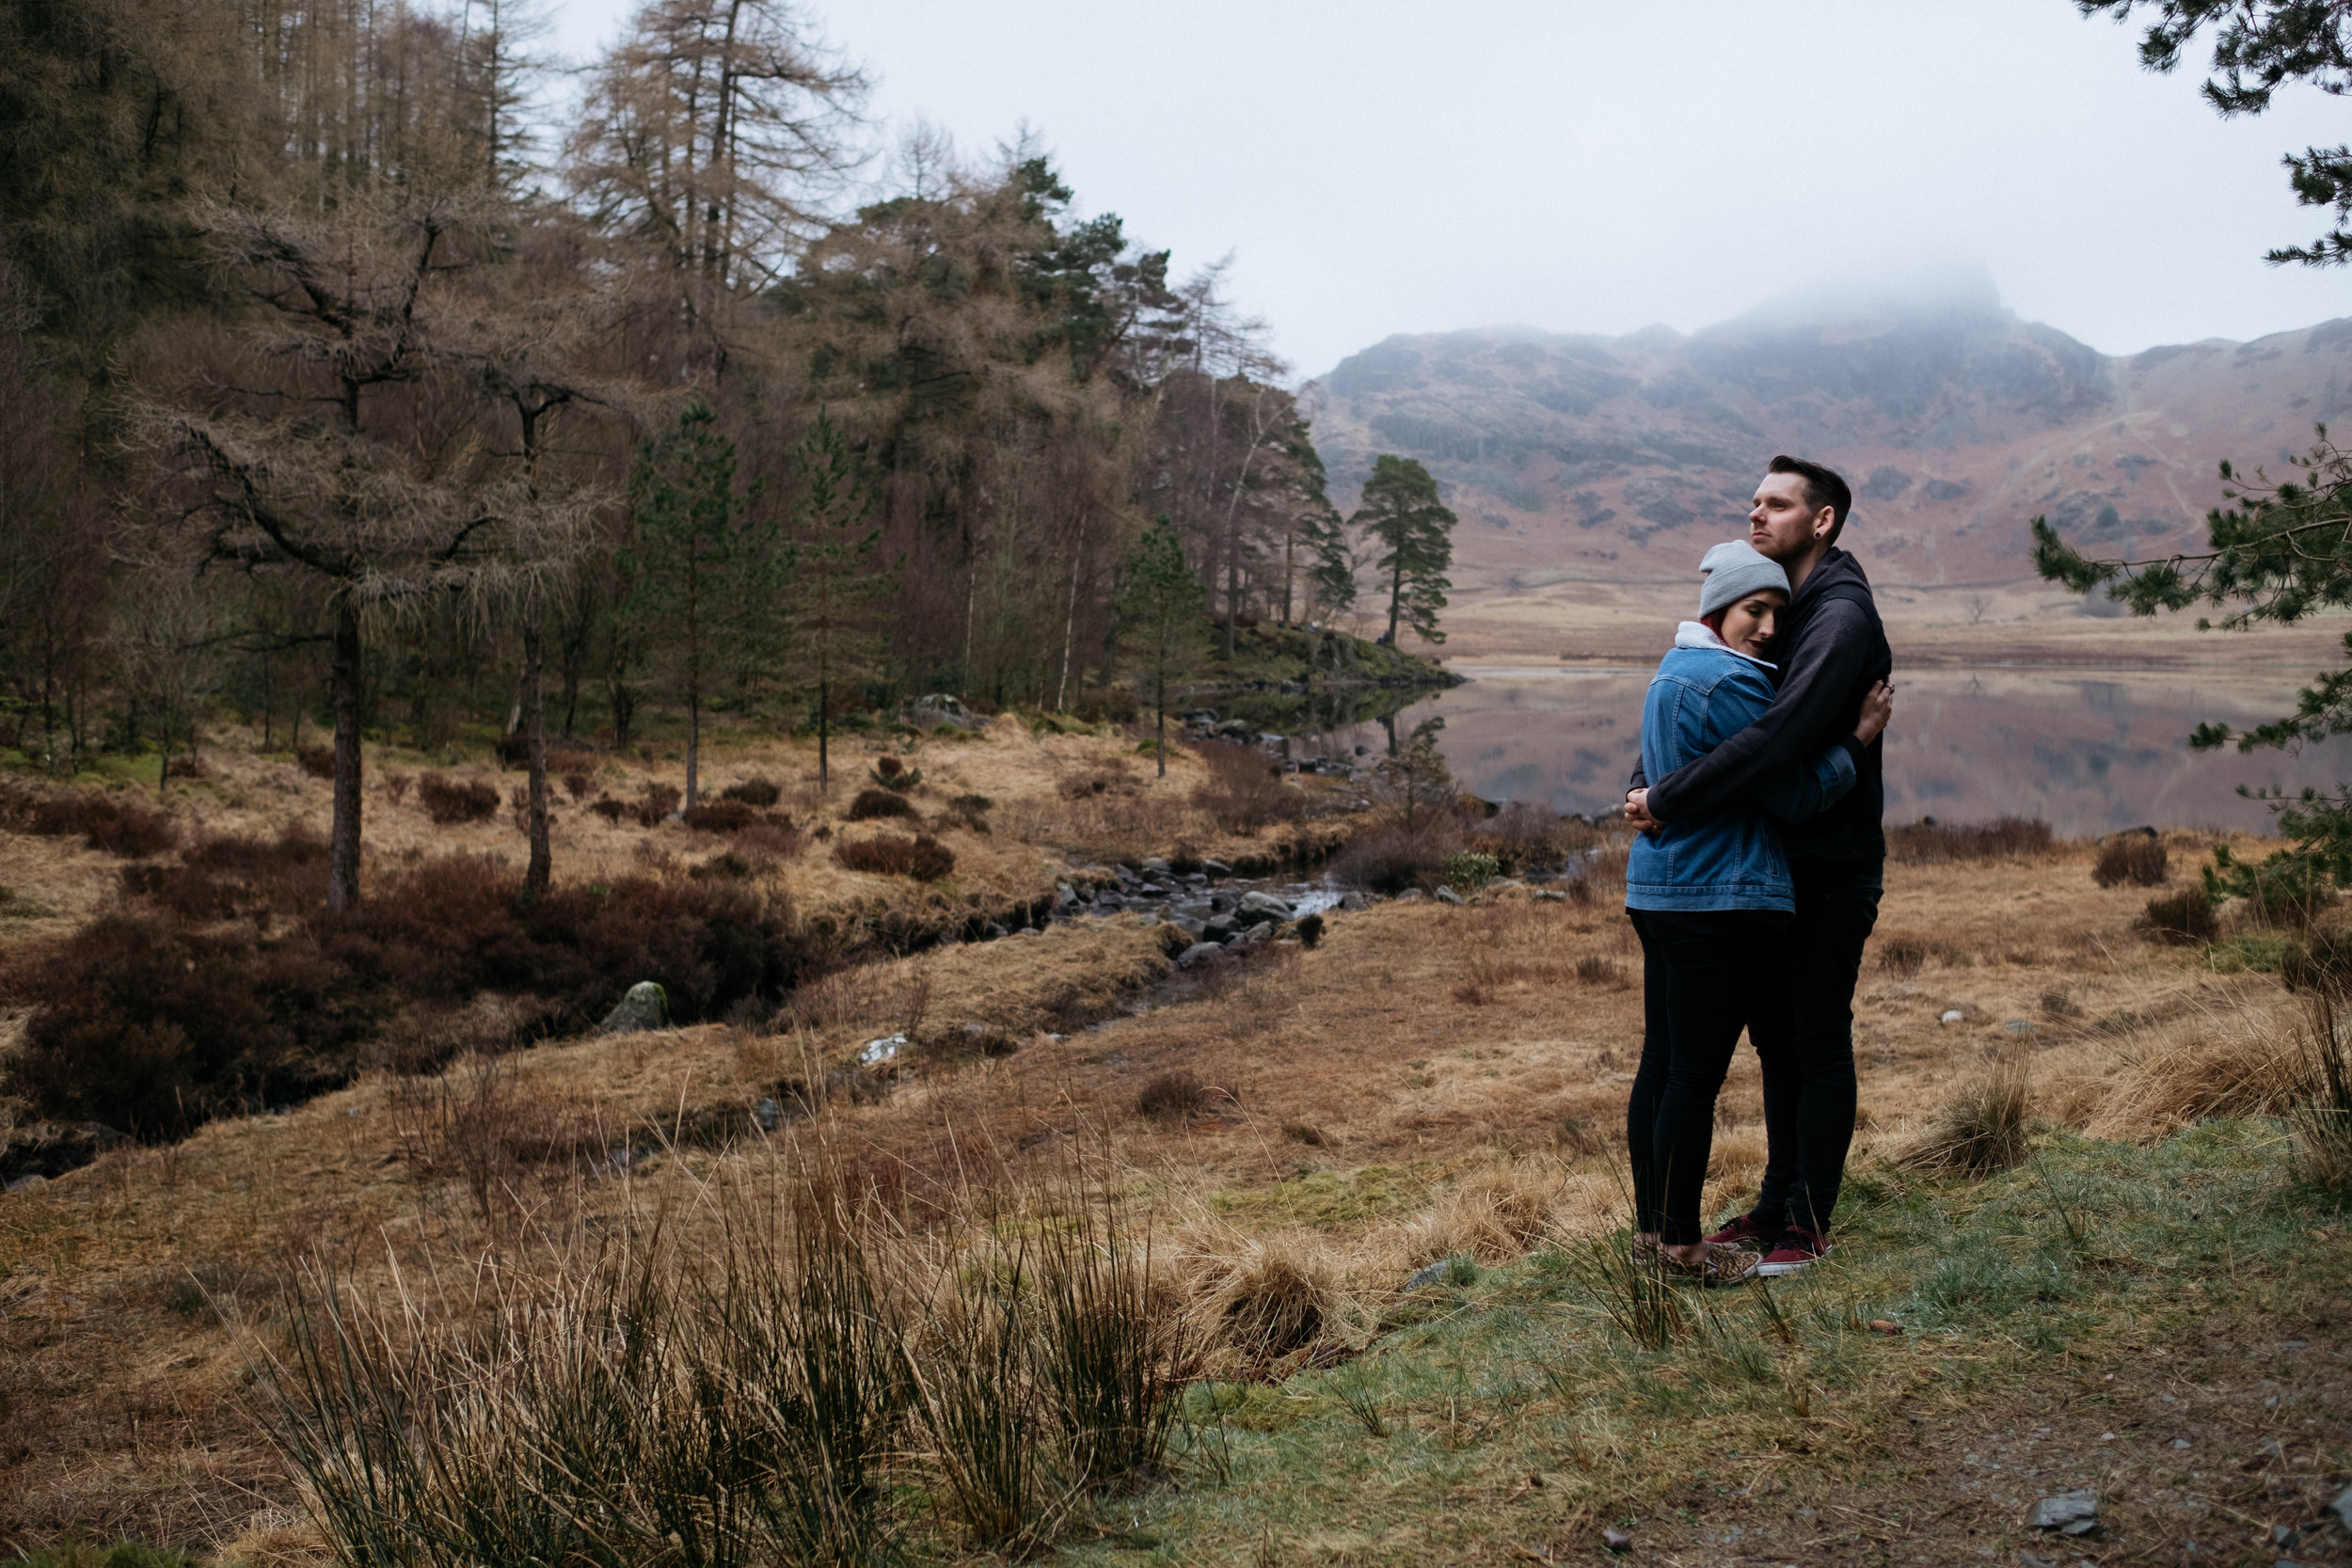 engagement shoot at Blea Tarn in the Lake District